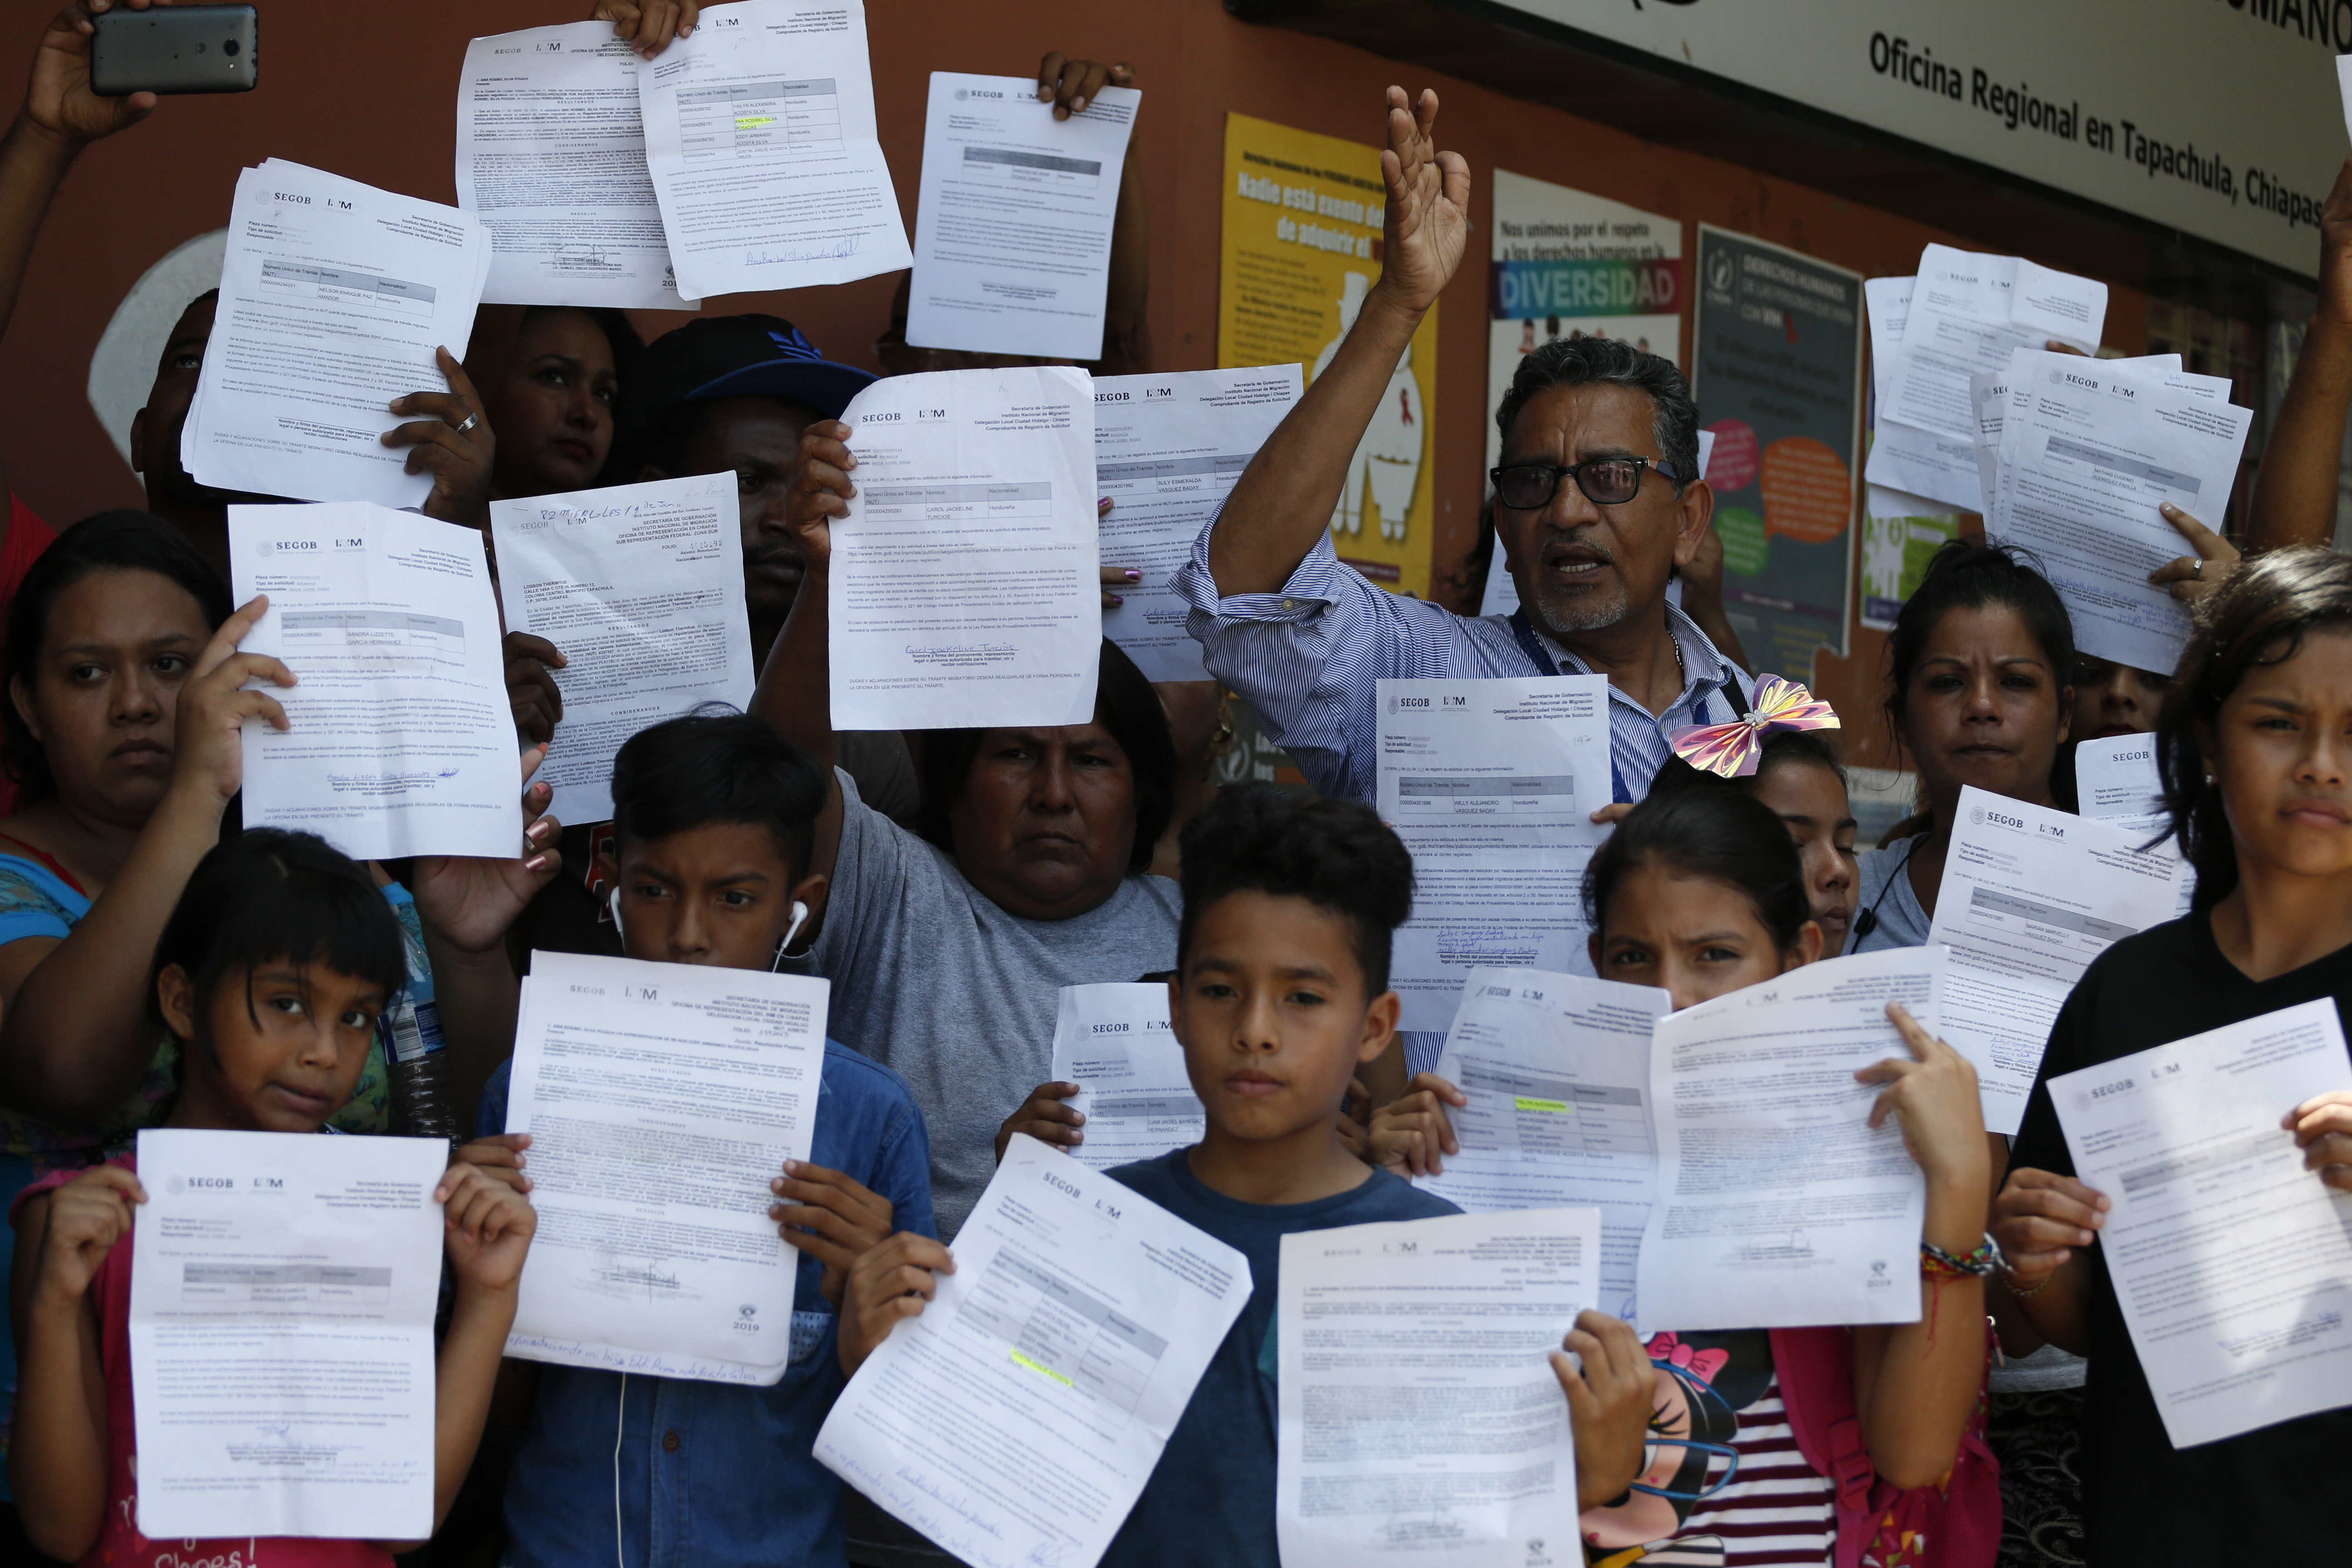 Human rights activist Luis Villagran speaks as migrants hold up their Mexican migration paperwork during a small protest against long wait times for receiving documents to legally stay in Mexico, outside the office of the national Human Rights Commission in Tapachula, Mexico, Wednesday, June 19, 2019. Villagran led a group of several dozens migrants to the offices to protest in front of the press, before entering with a representative group of migrants from several countries to present the group's complaints.(AP Photo/Rebecca Blackwell)